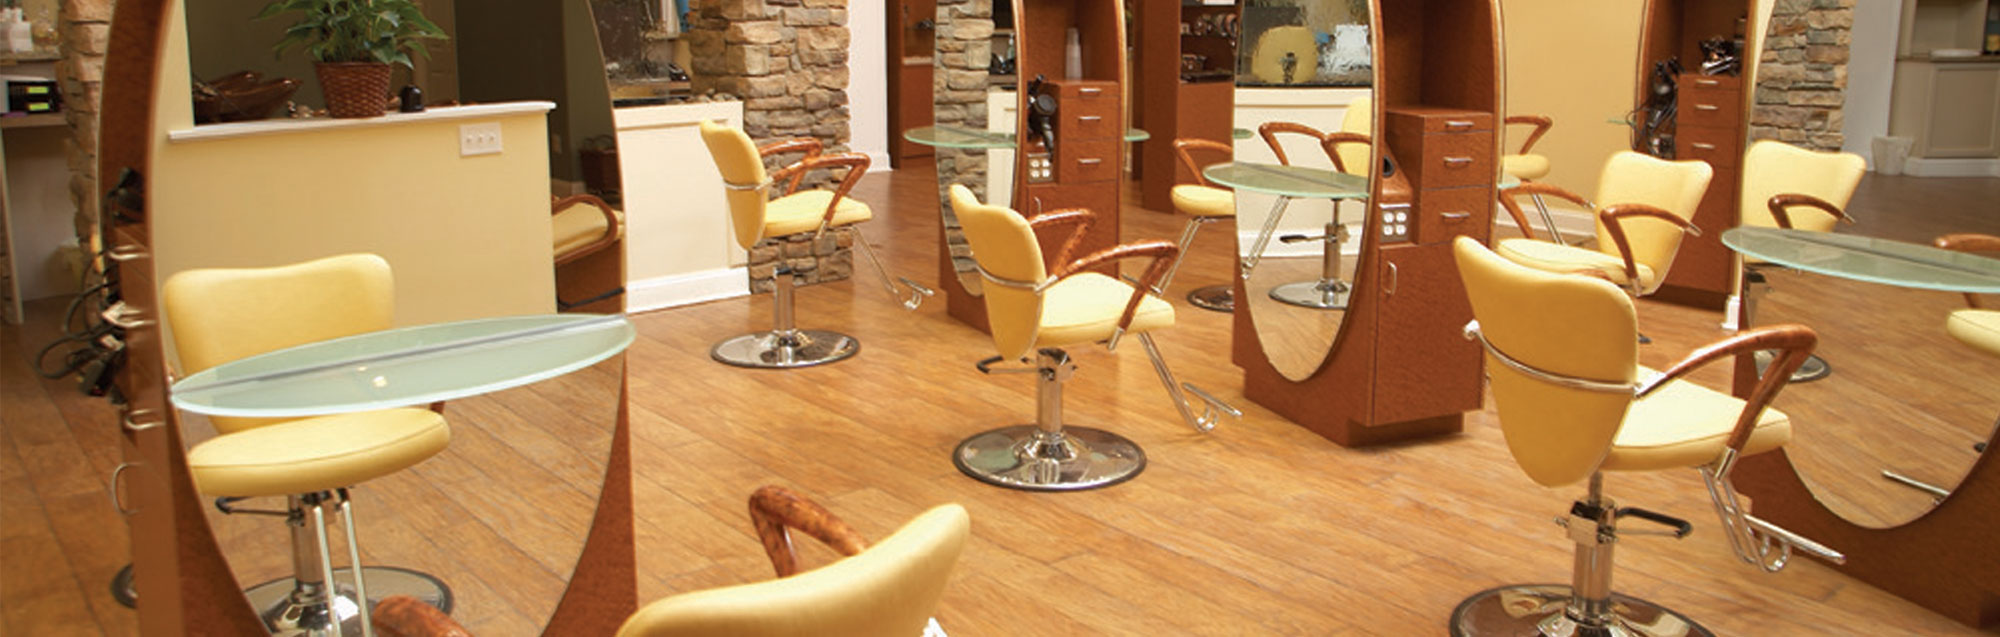 empty salon chairs and stations in serenity day spa